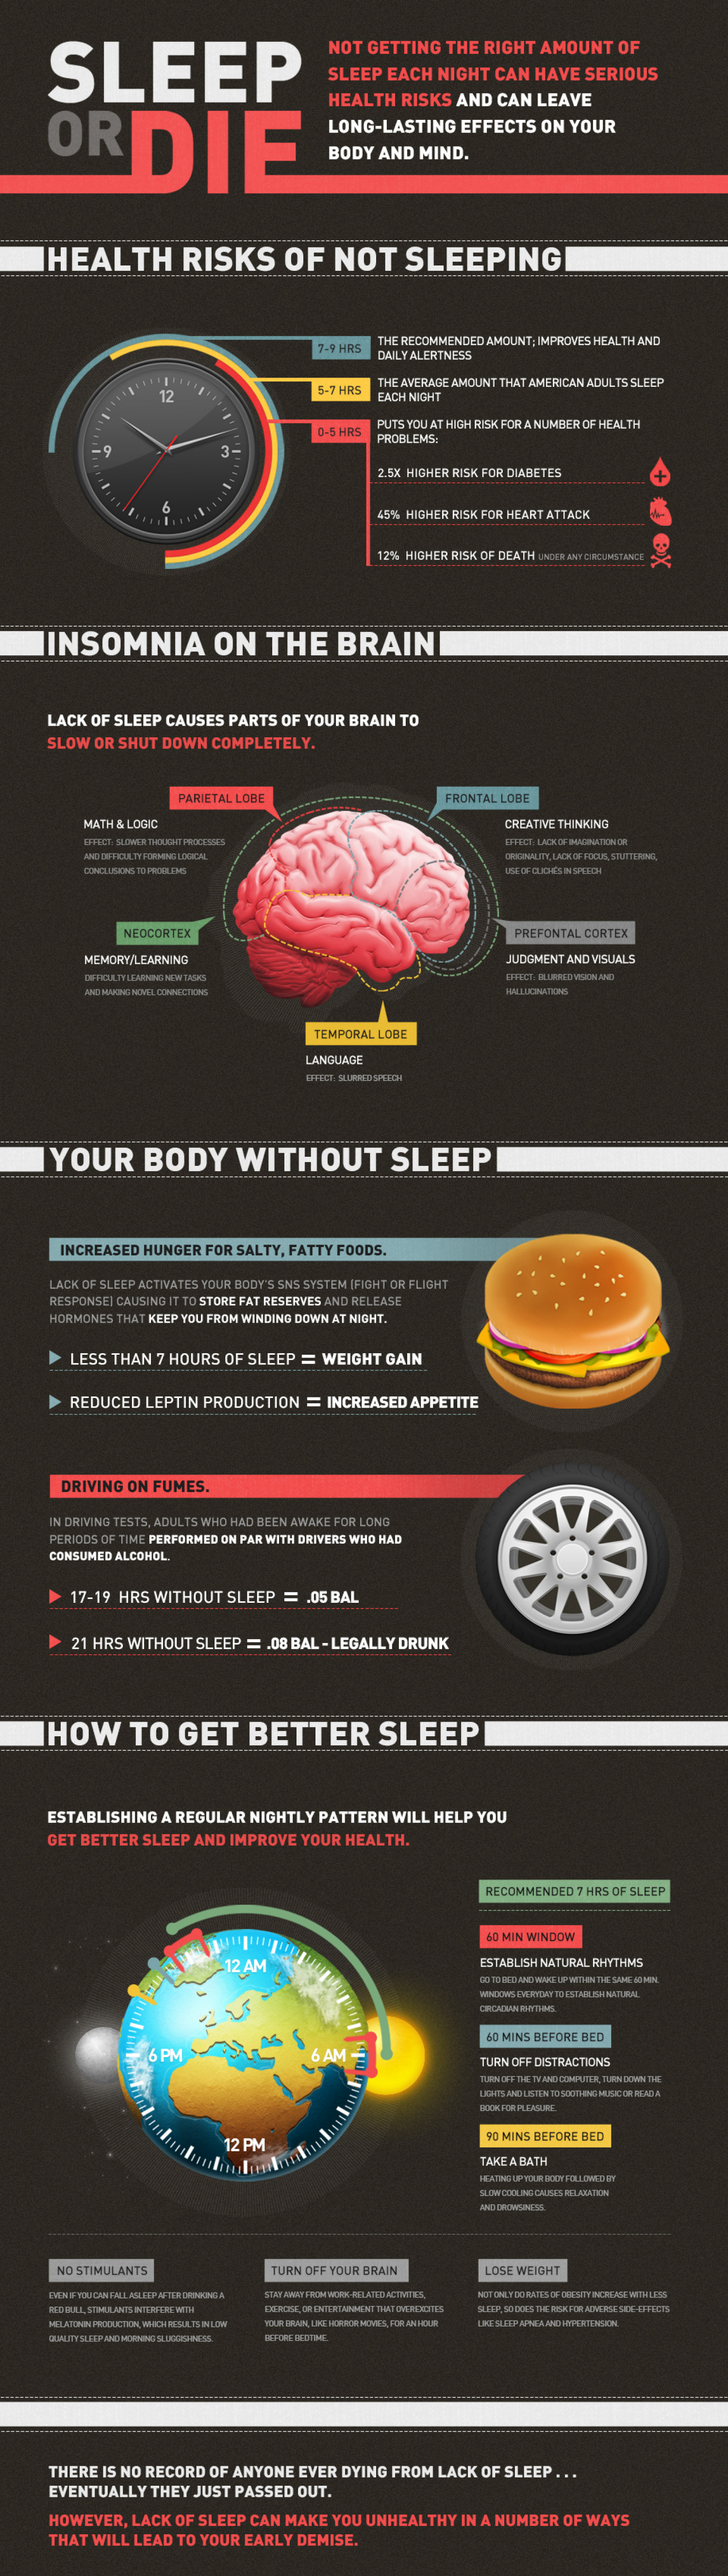 Sleep or Die Infographic